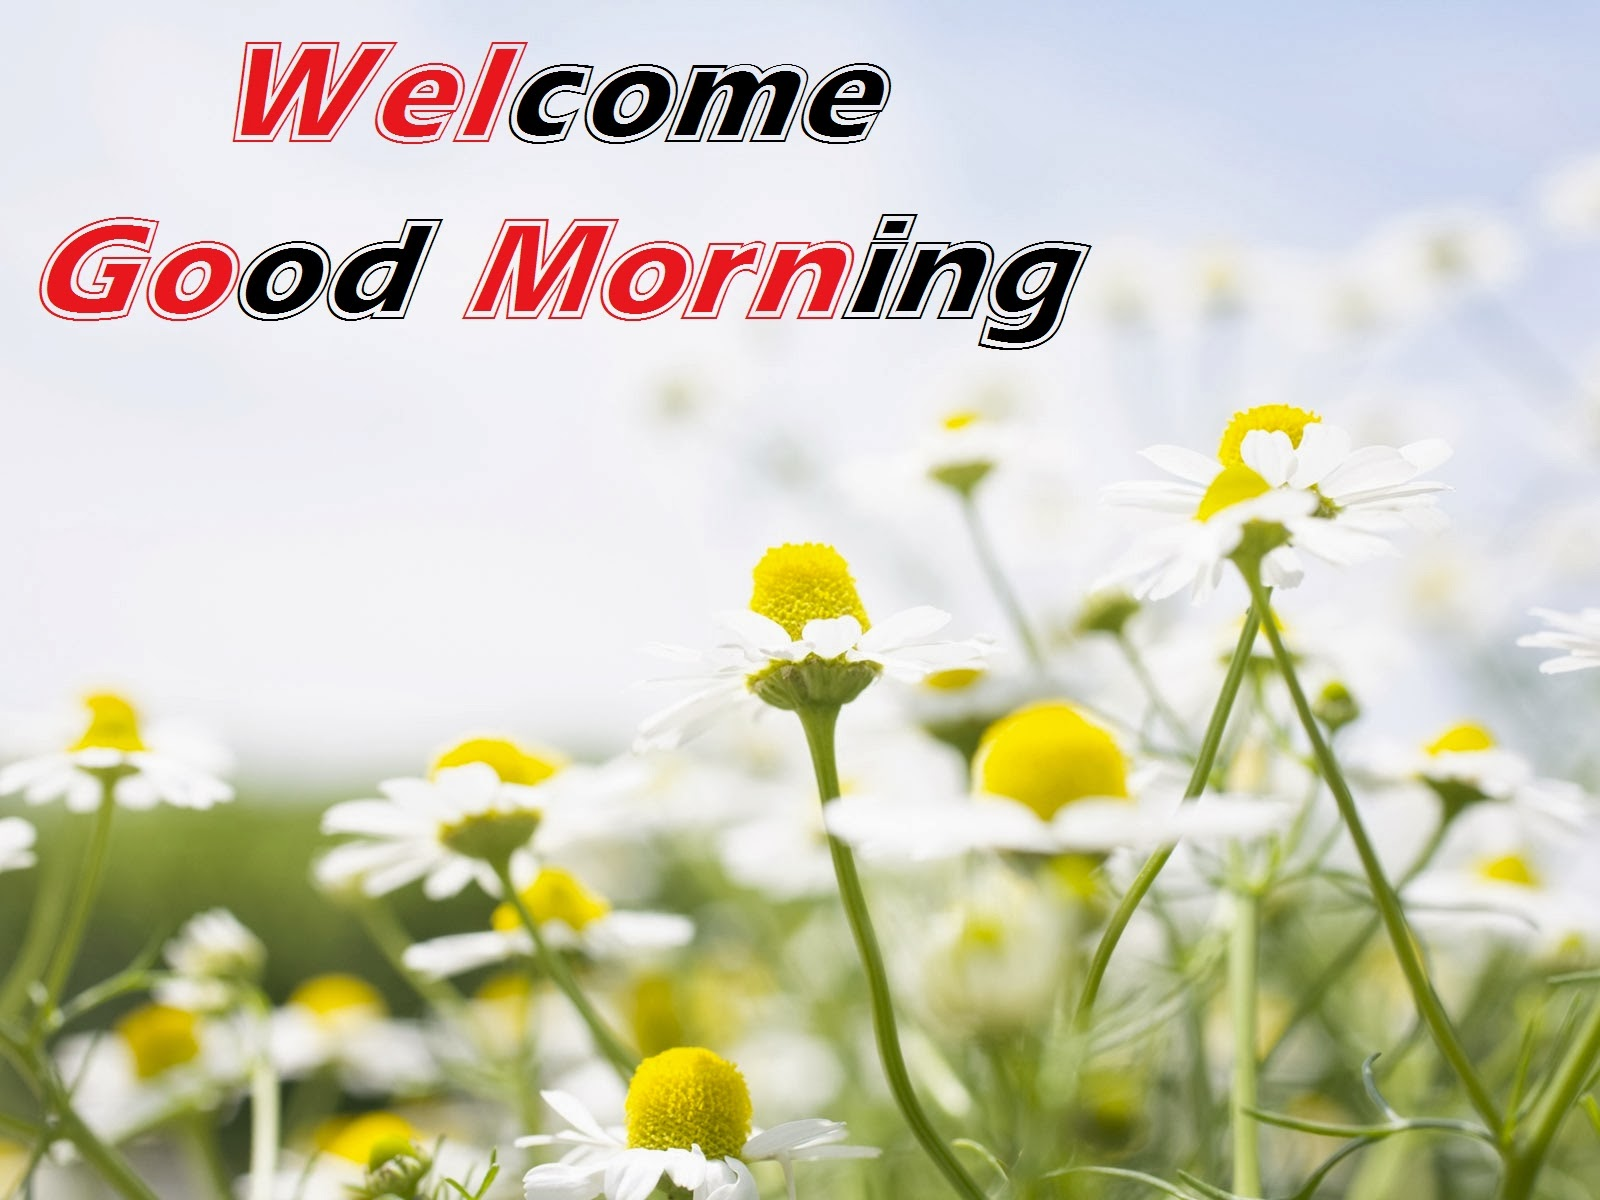 Welcome Good Morning Hd Cards Lovely Wallpapers